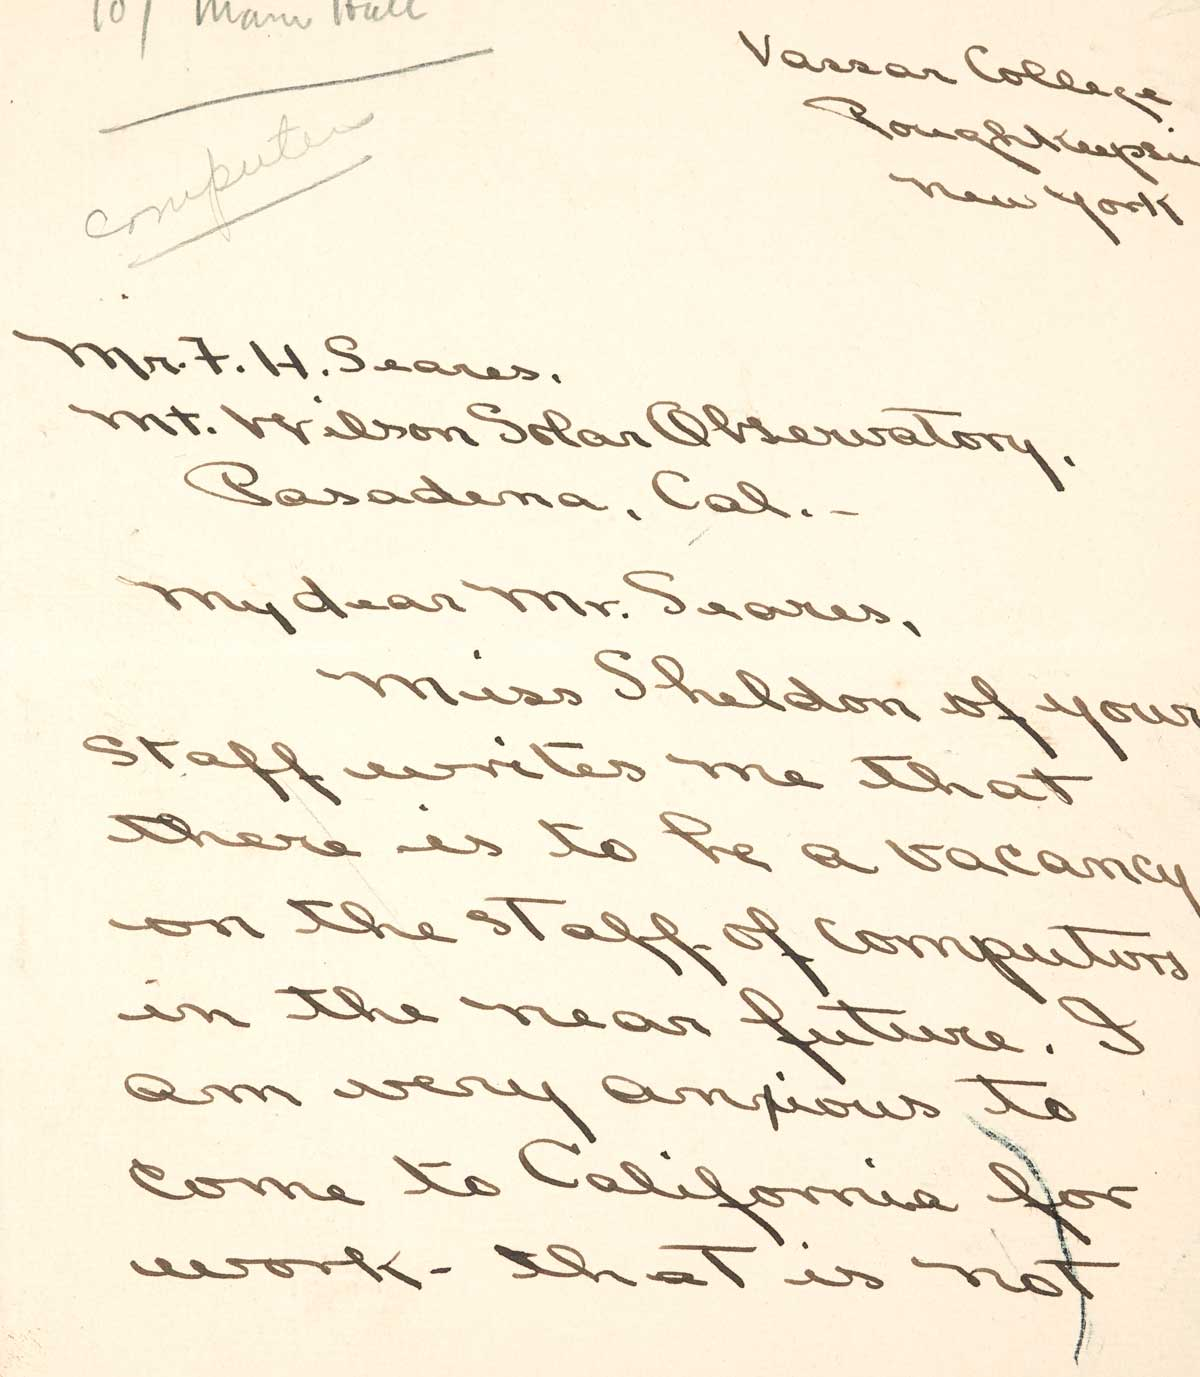 Letter to F.H. Seares of Mt. Wilson observatory from Ruth Barnett p1 | Image courtesy of the Observatories of the Carnegie Institution for Science Collection at the Huntington Library, San Marino, California